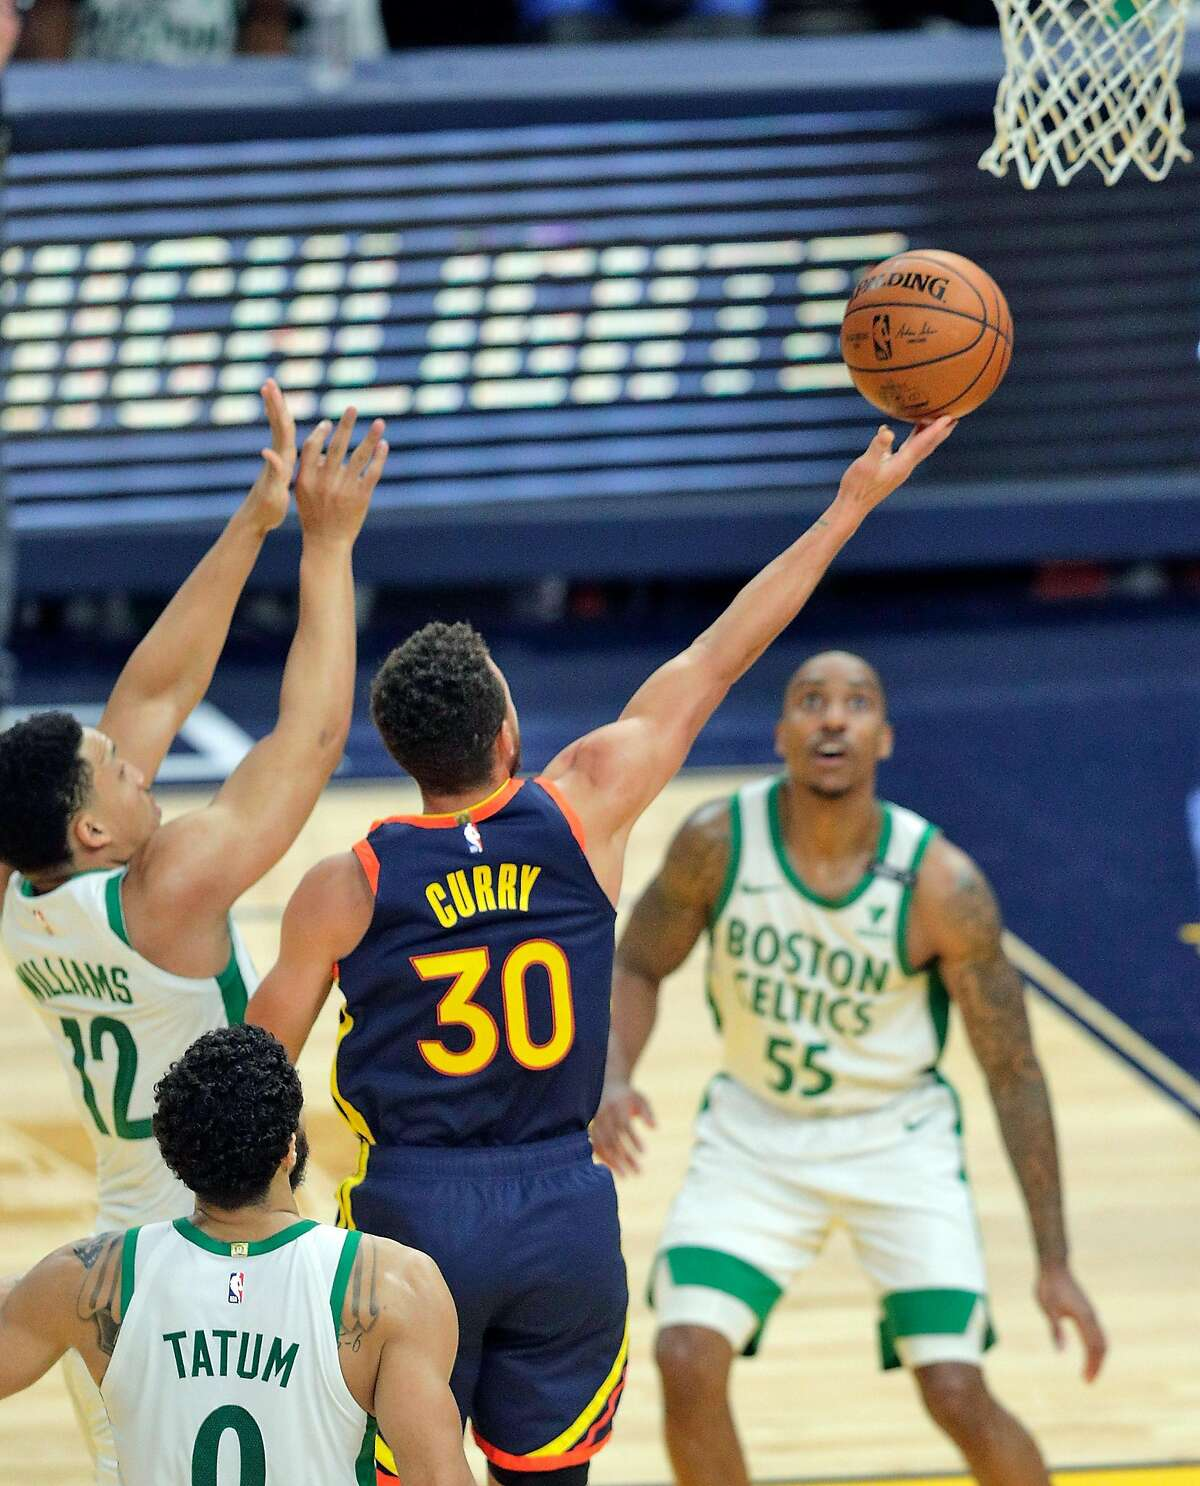 Stephen Curry, who scored 38 points, puts up a shot between Boston's Grant Williams and Jeff Teague (55).